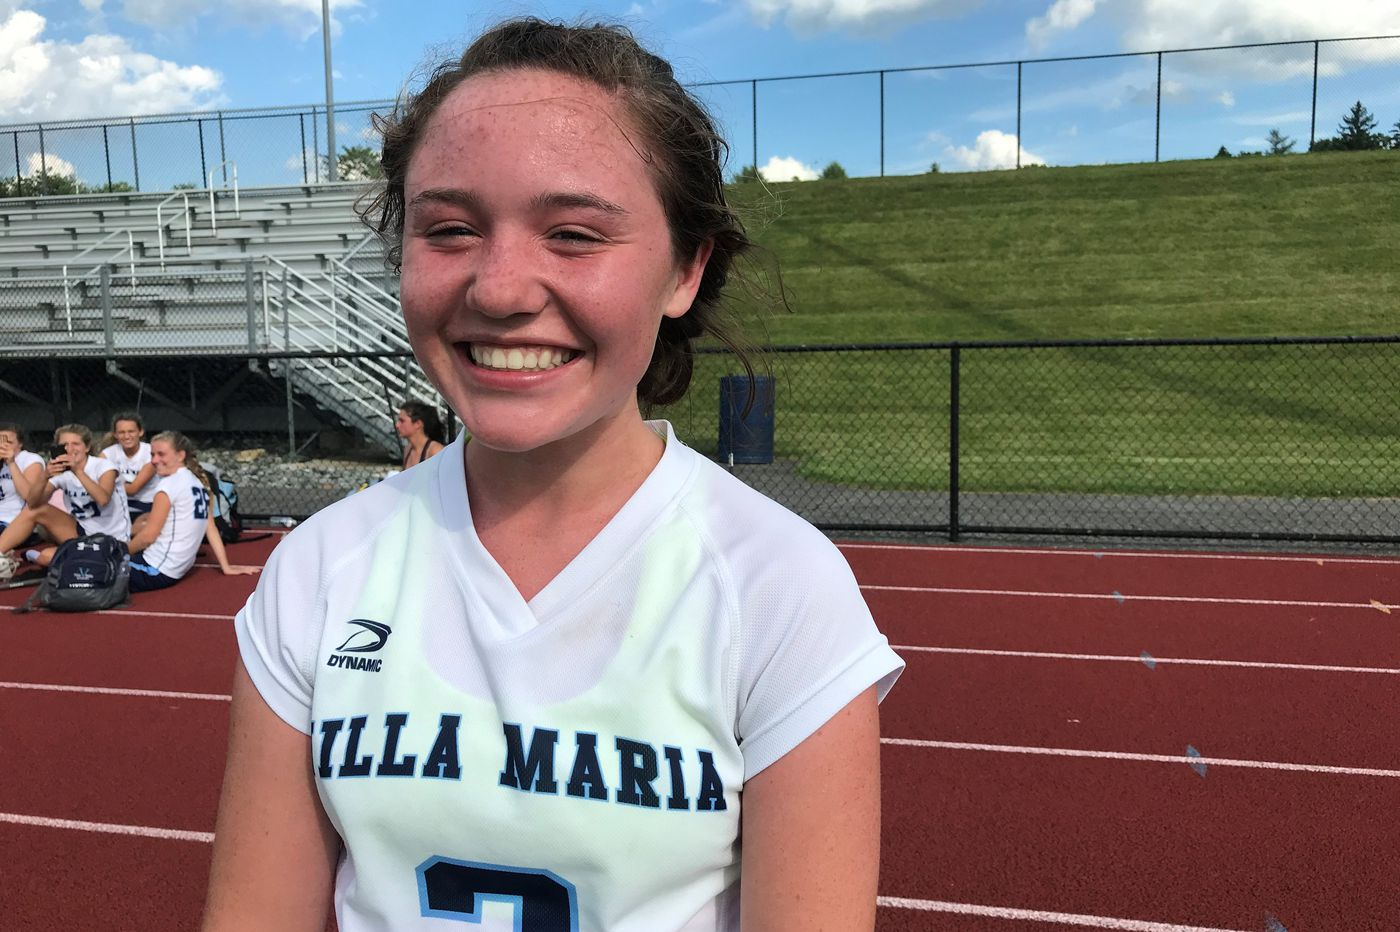 Mighty Margie Carden helps Villa Maria advance to PIAA finale